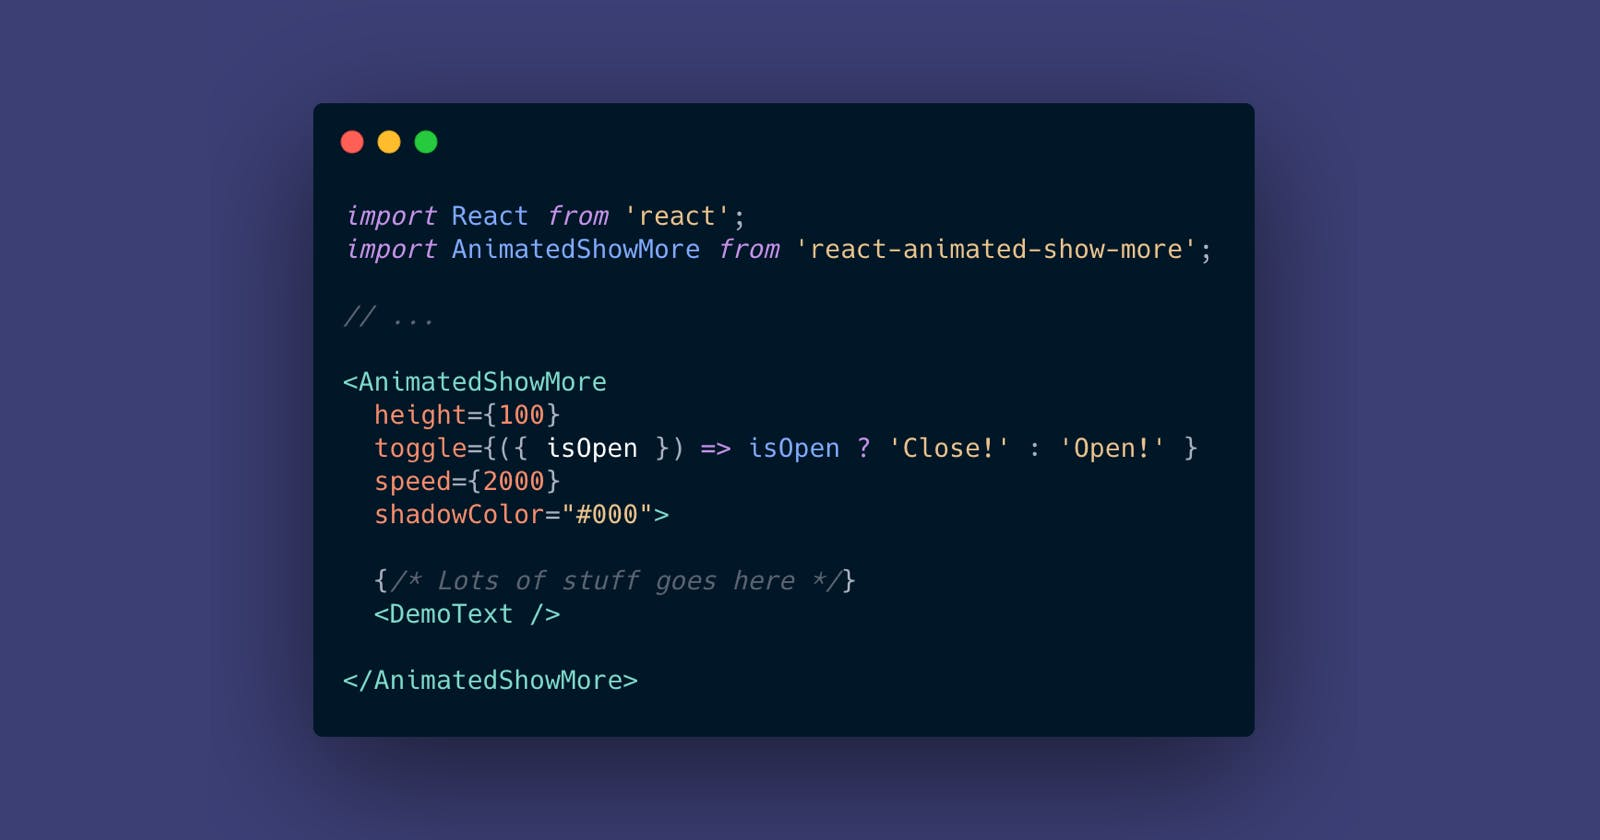 Animated Show More toggle in React